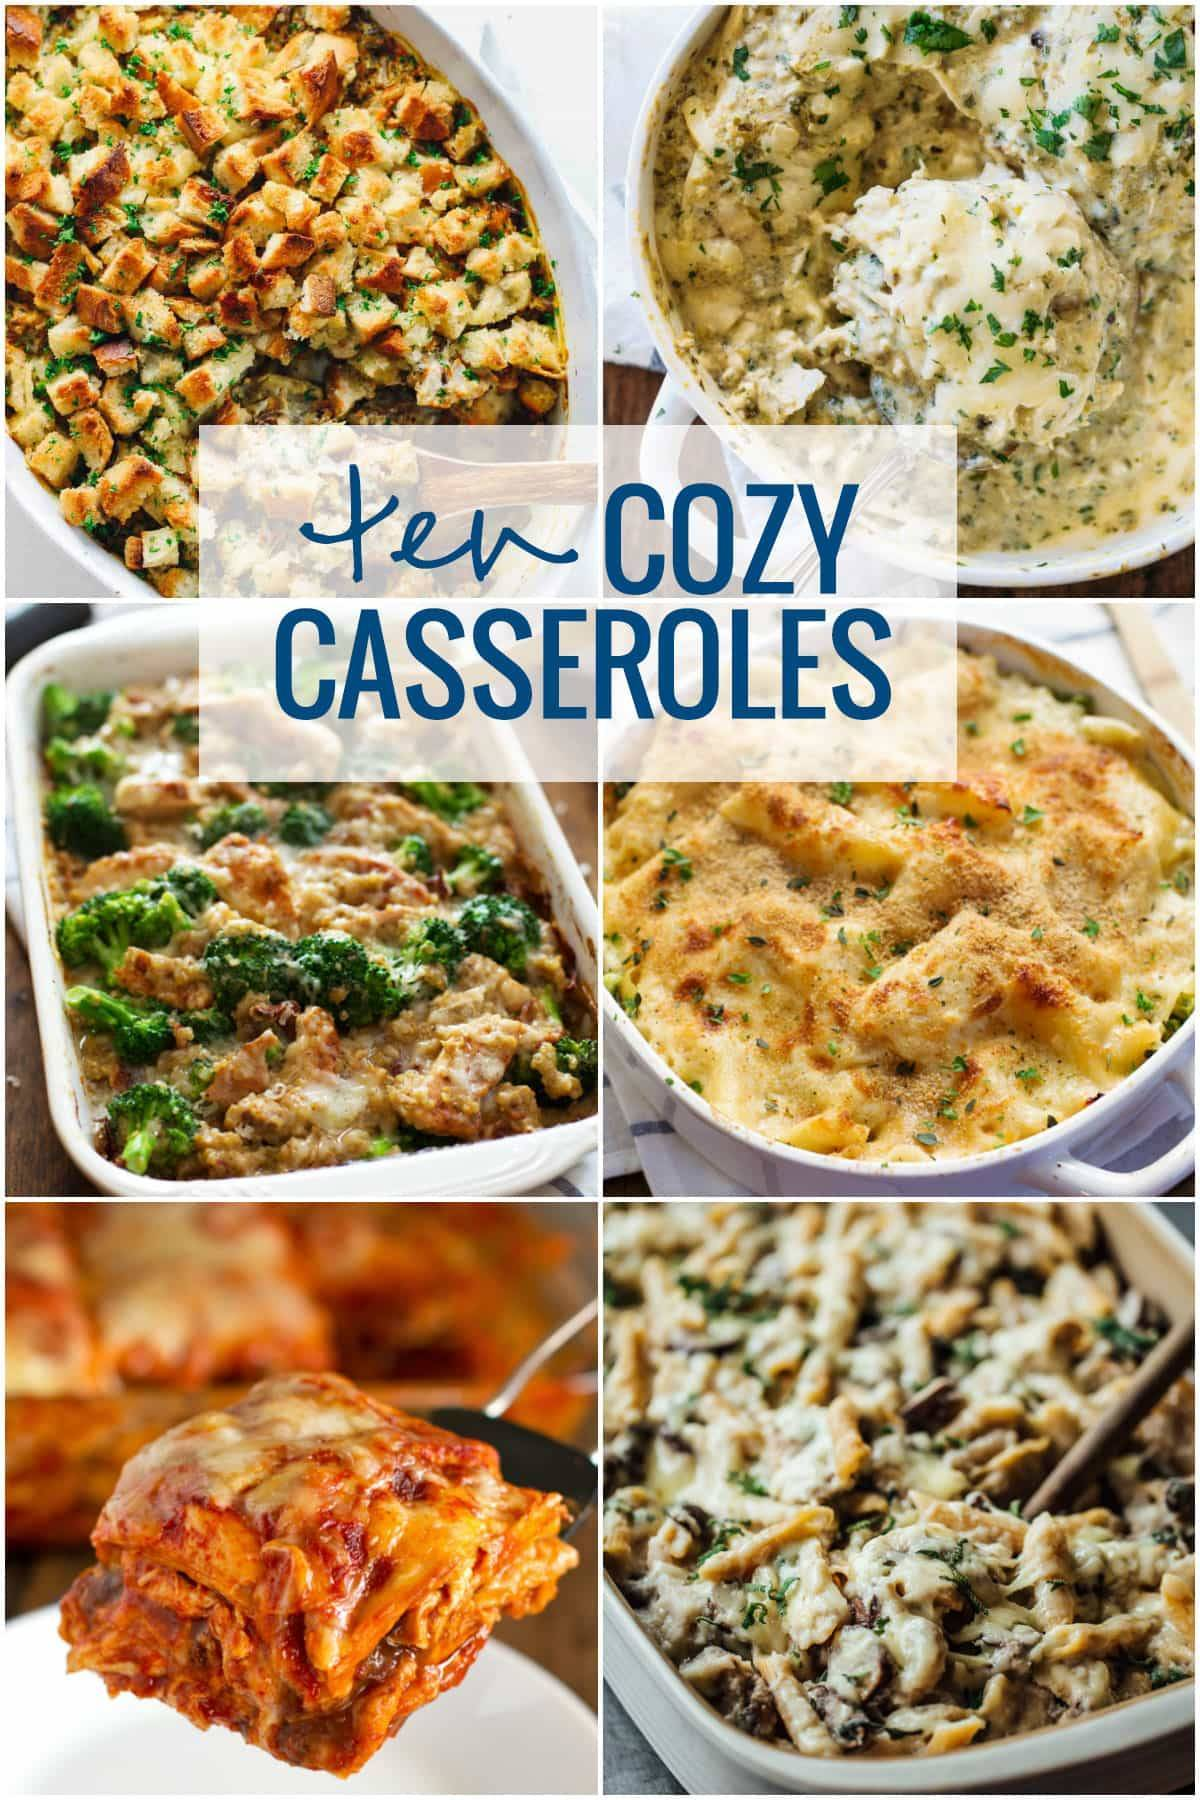 Top 10 casseroles with a collage of images.